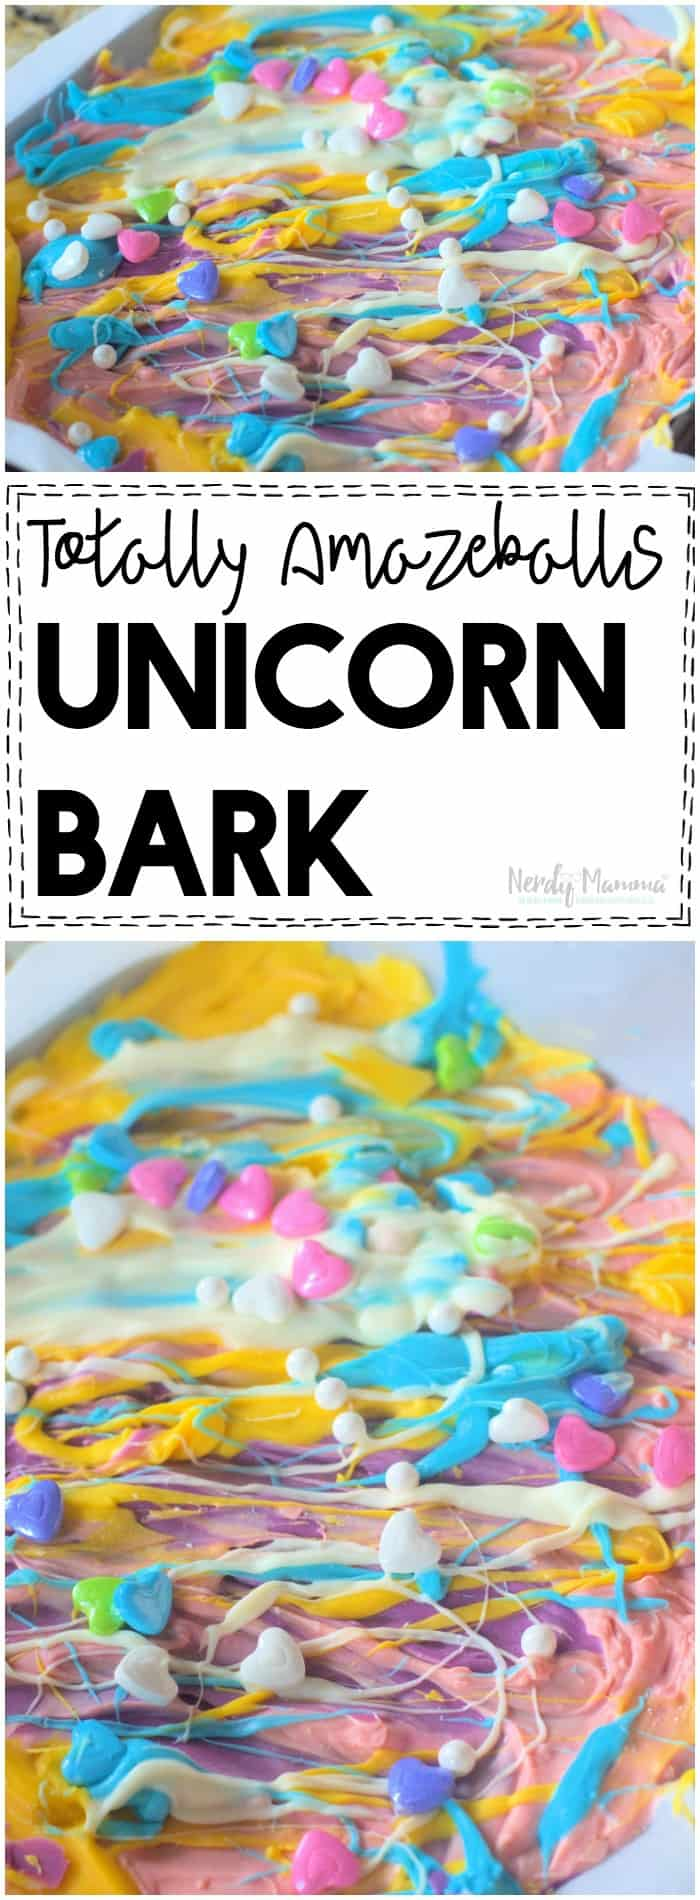 OMG, You MUST try this totally amazeballs unicorn bark!